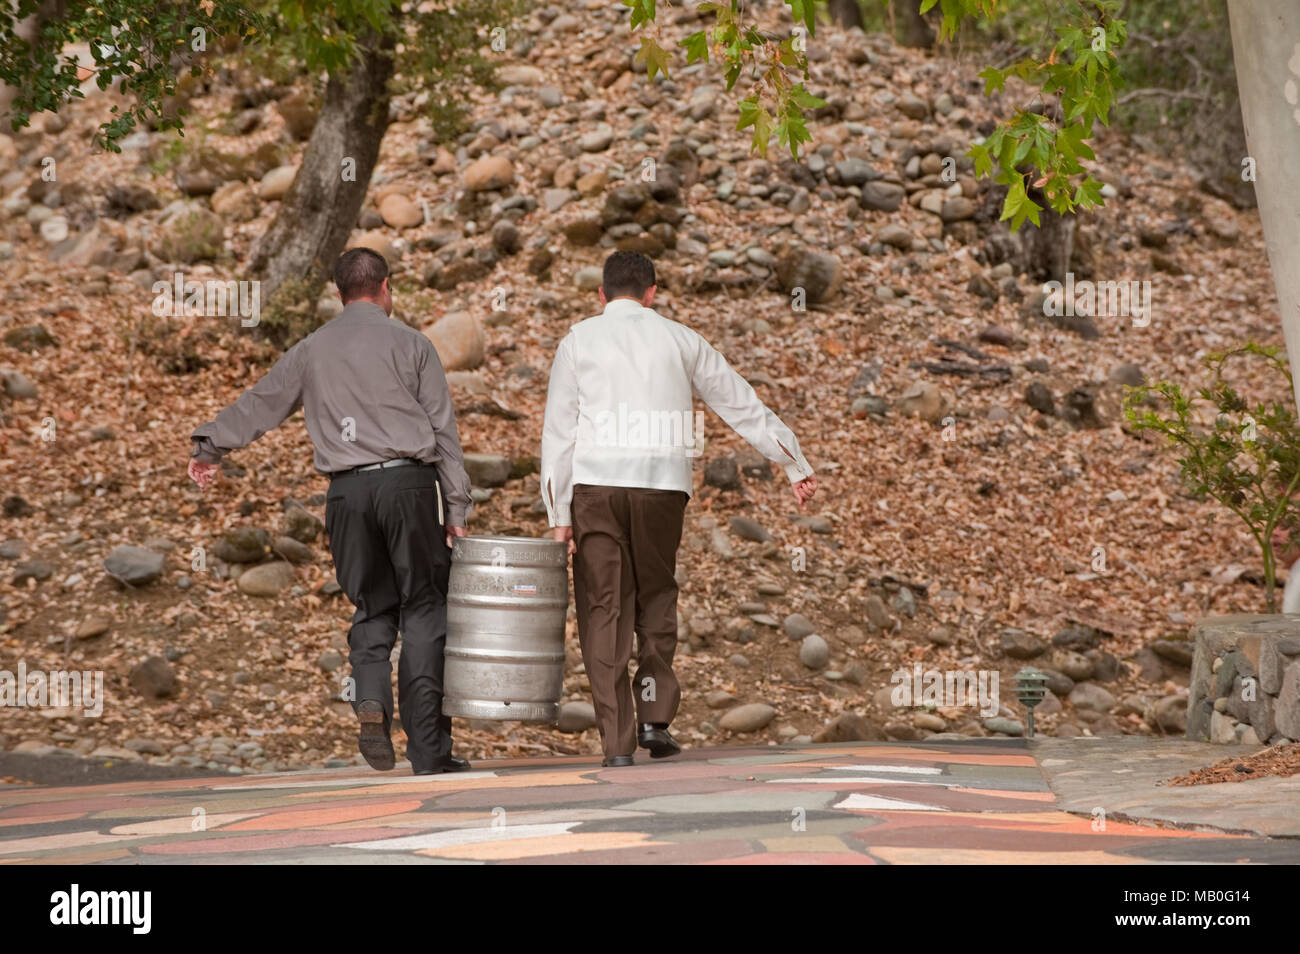 A groomsman and a man carrying a keg of beer for a wedding reception Stock Photo